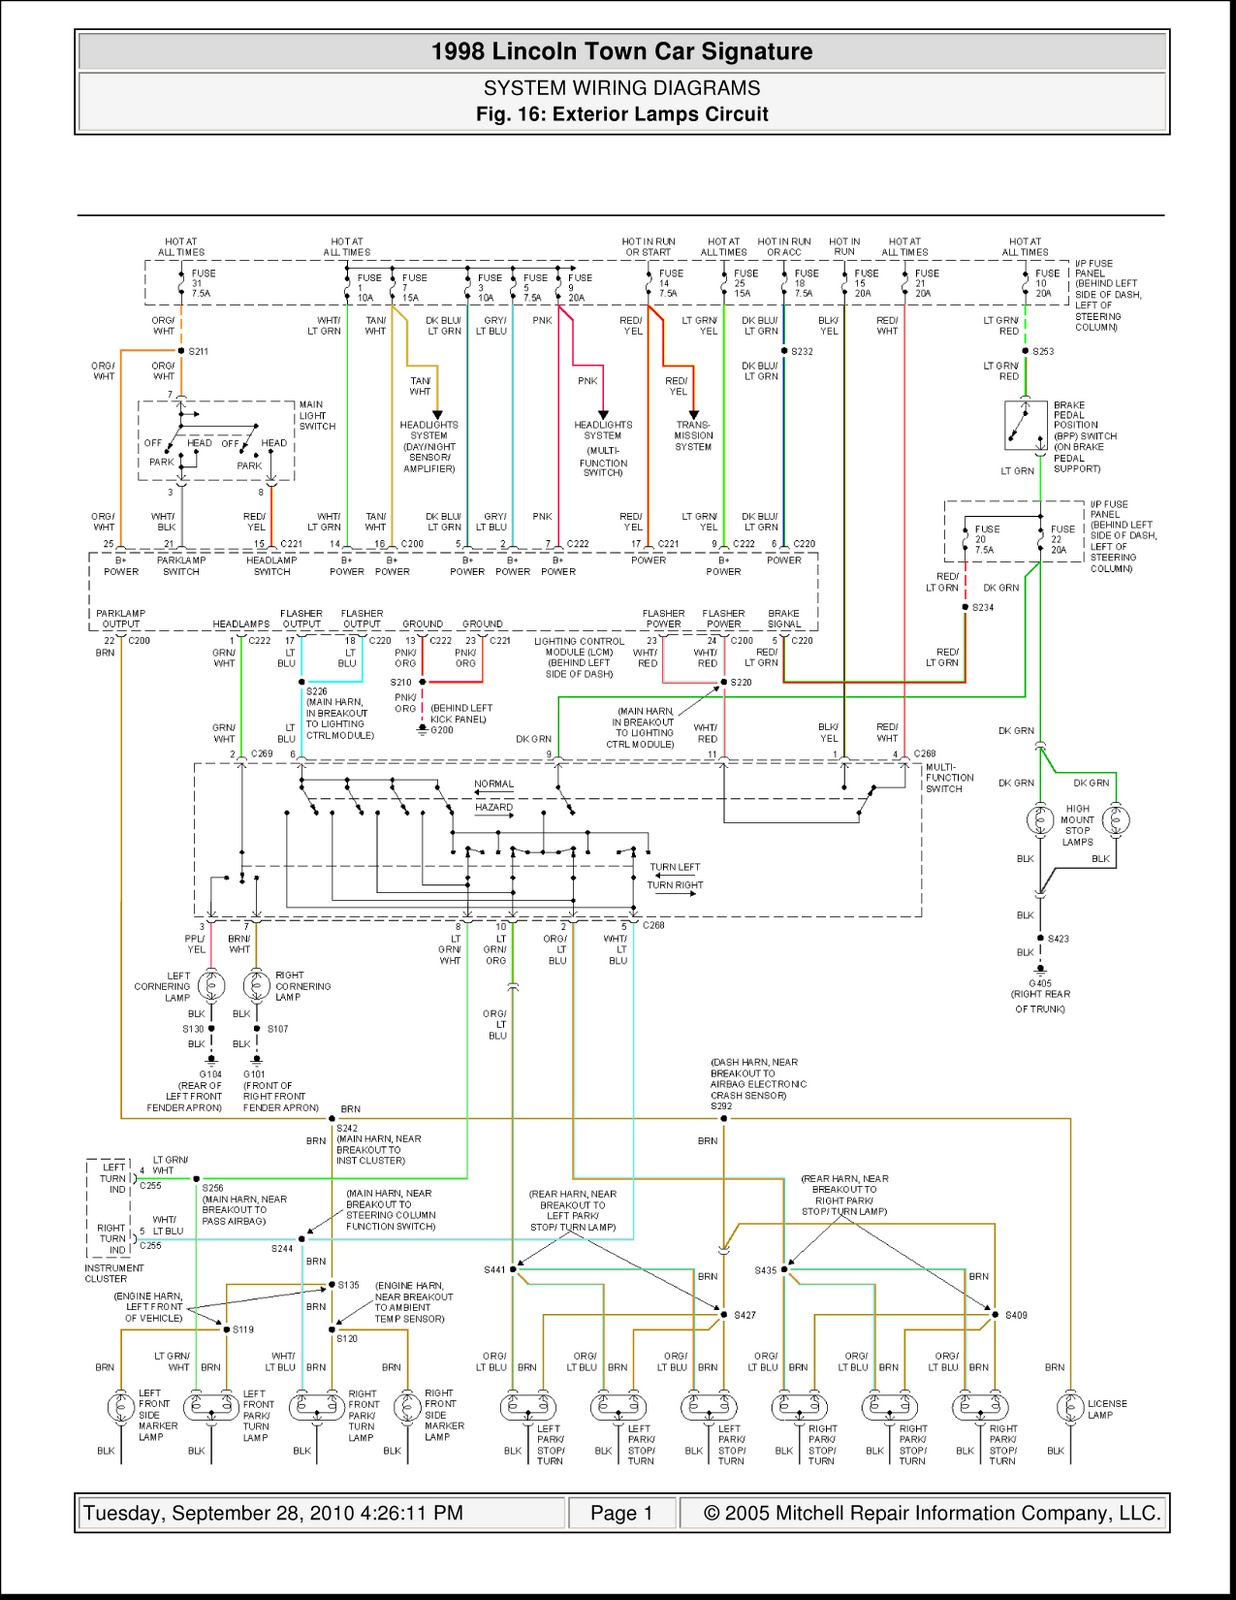 hight resolution of 1998 lincoln town car signature system wiring diagrams